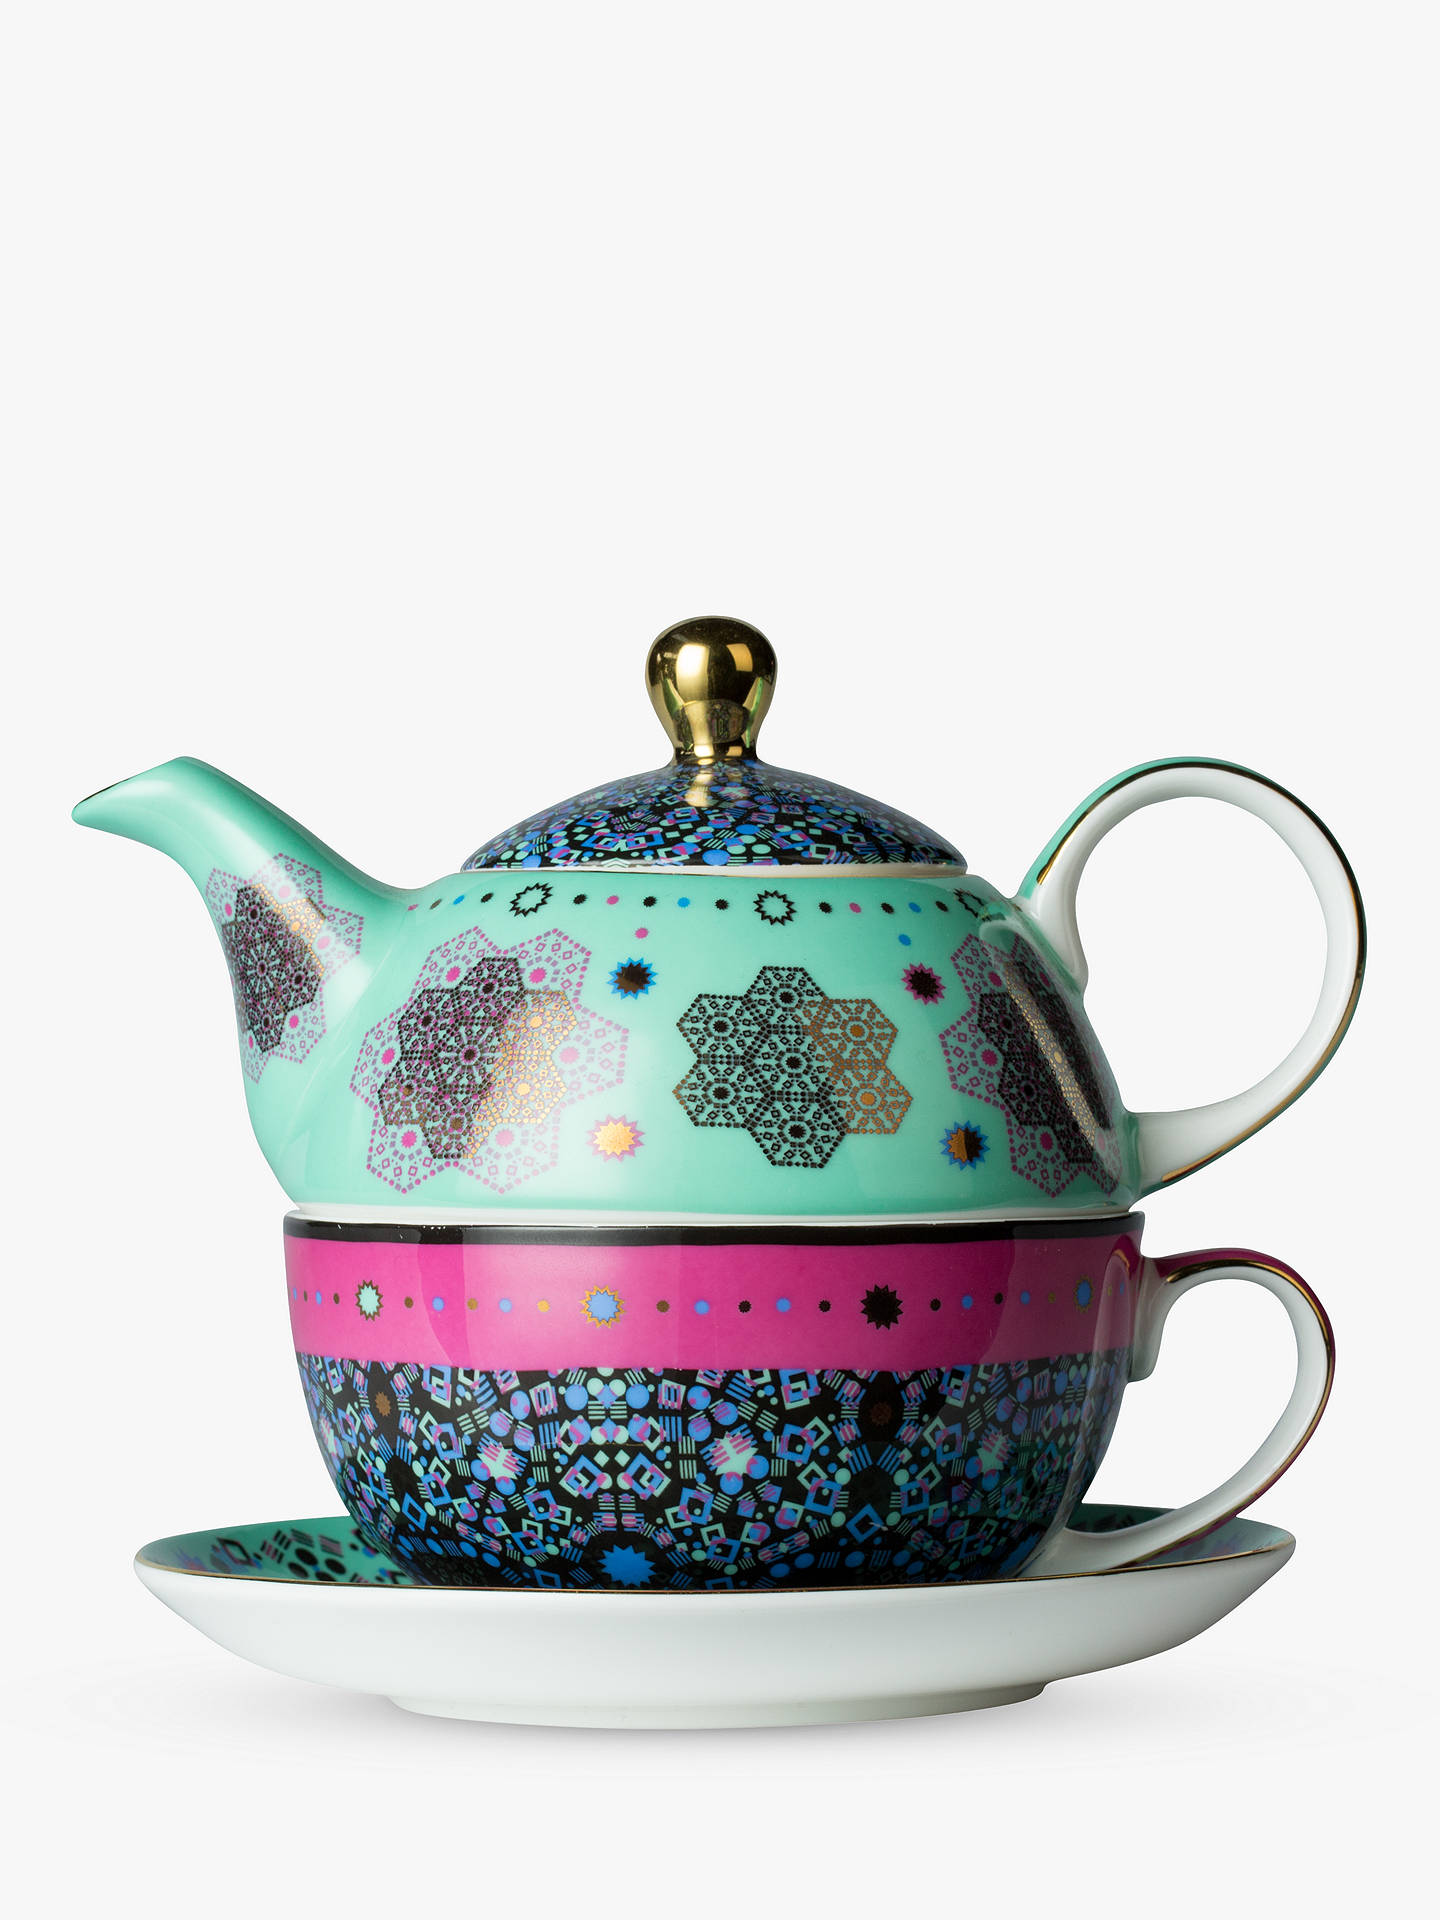 BuyT2 Moroccan Tealeidoscope Teapot For One, Aqua/Multi Online at johnlewis.com